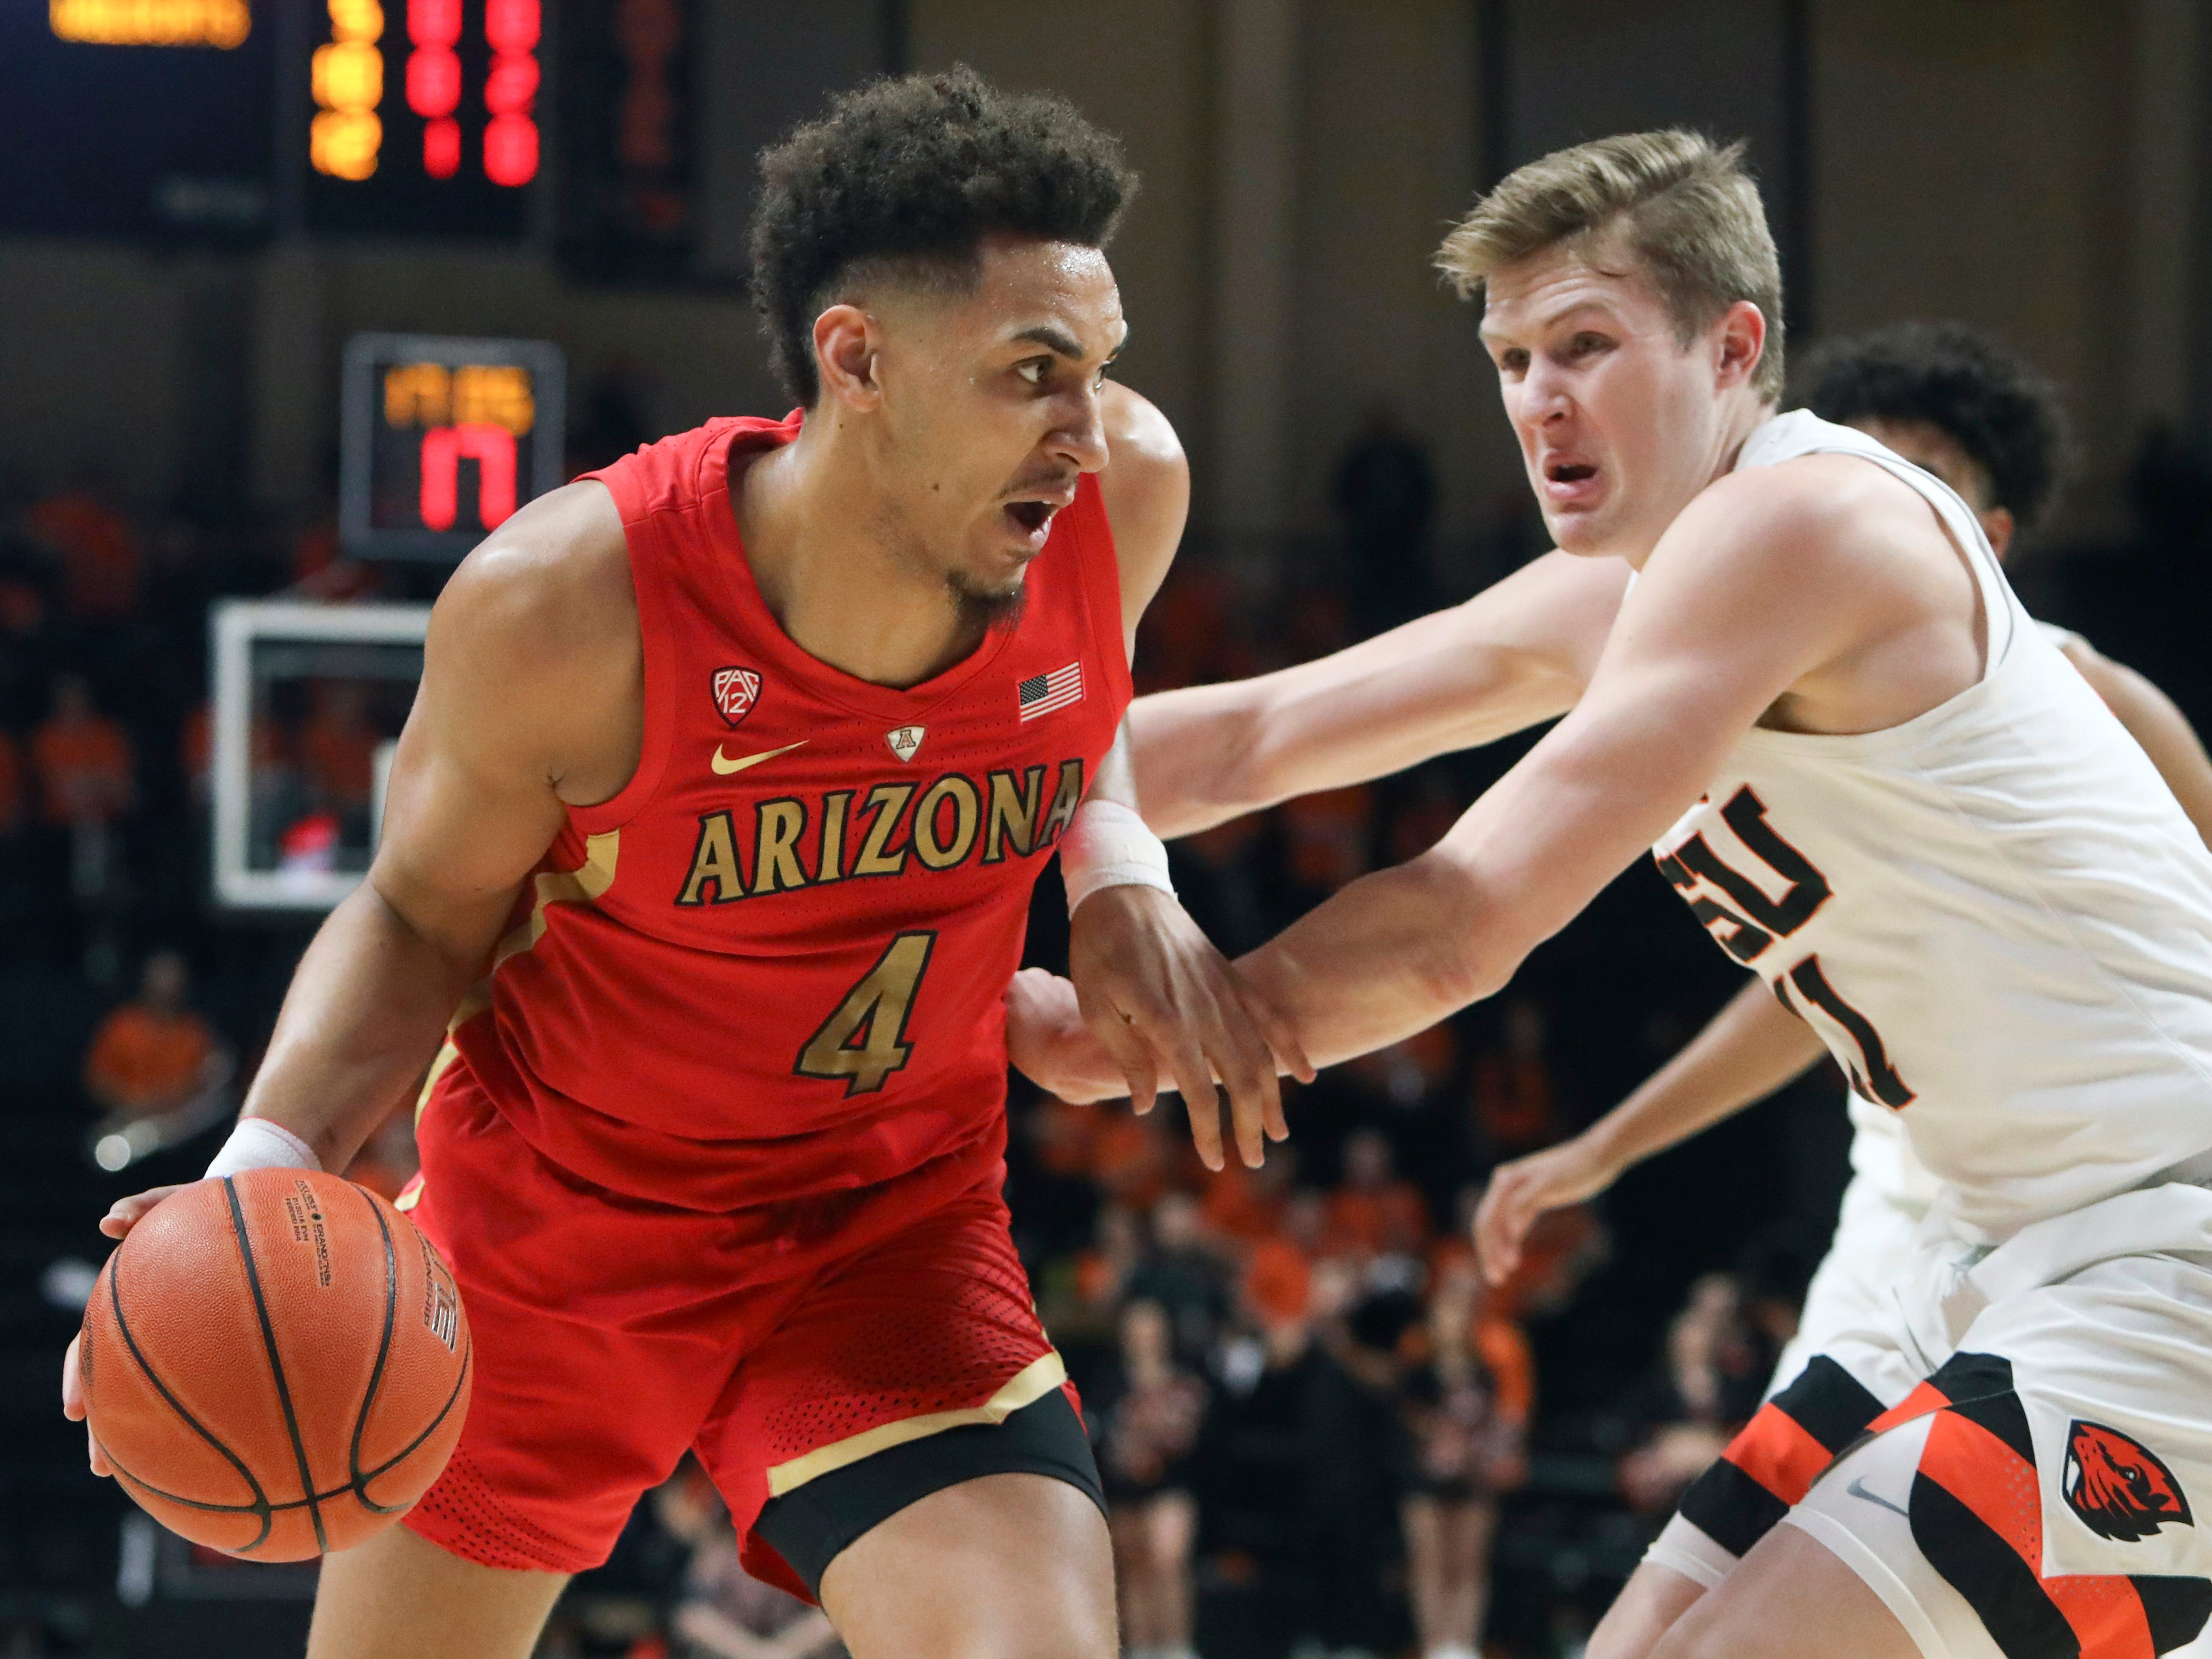 Arizona's Chase Jeter (4) drives around Oregon State's Zach Reichle (11) during the first half of an NCAA college basketball game in Corvallis, Ore., Thursday, Feb. 28, 2019.